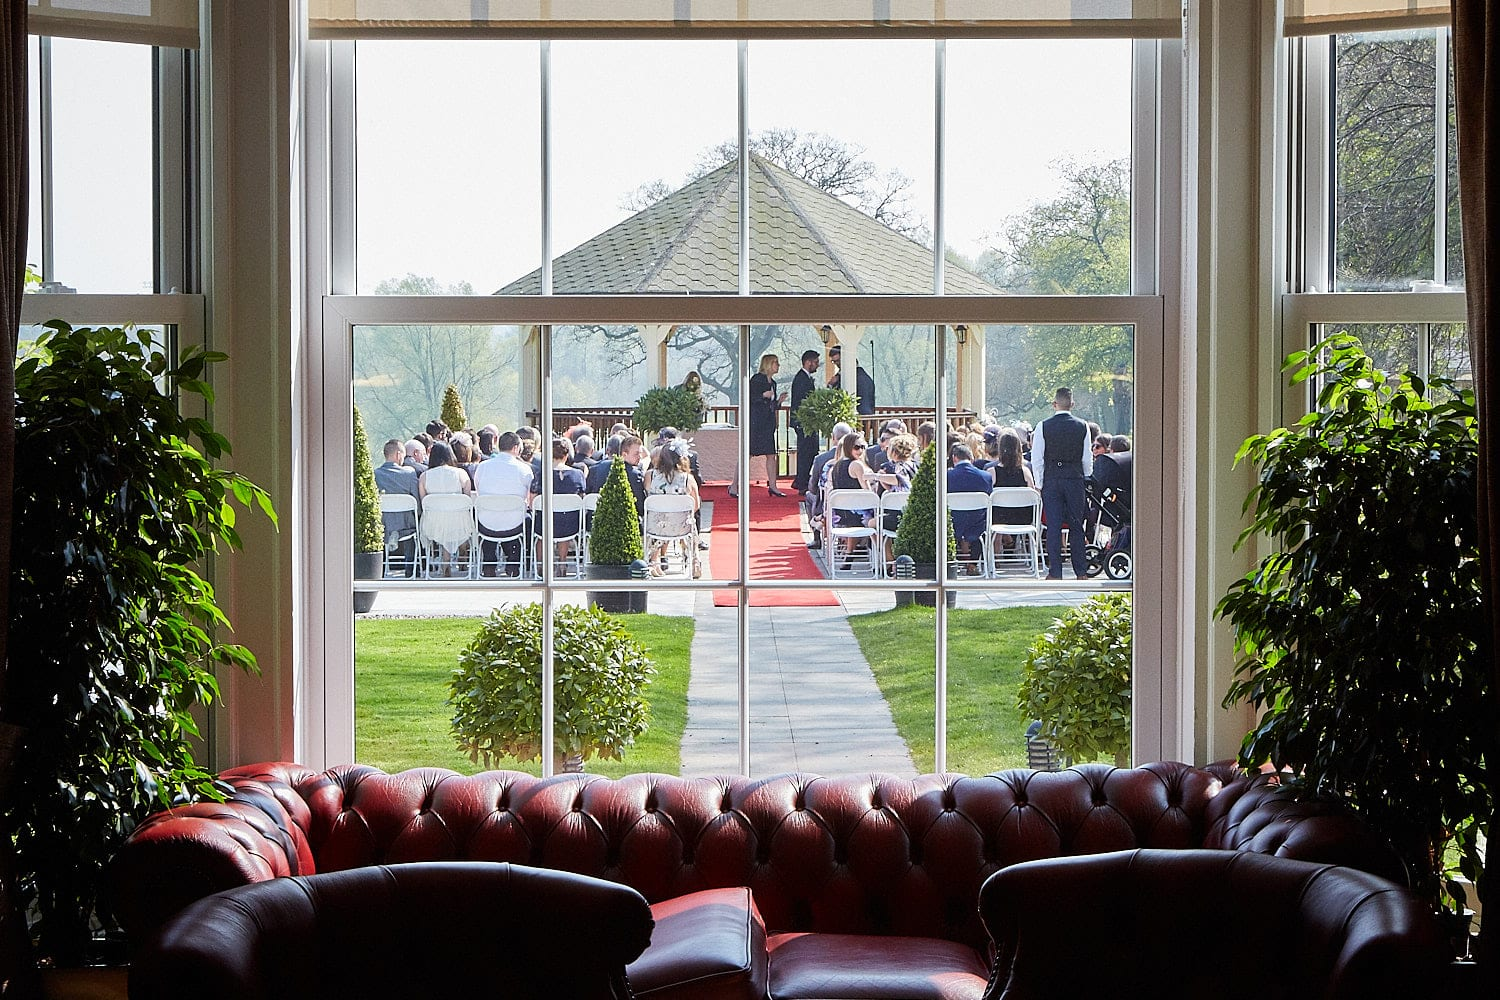 The wedding guests wait outdoors and Kenwick Park, Louth for the arrival of the bride.